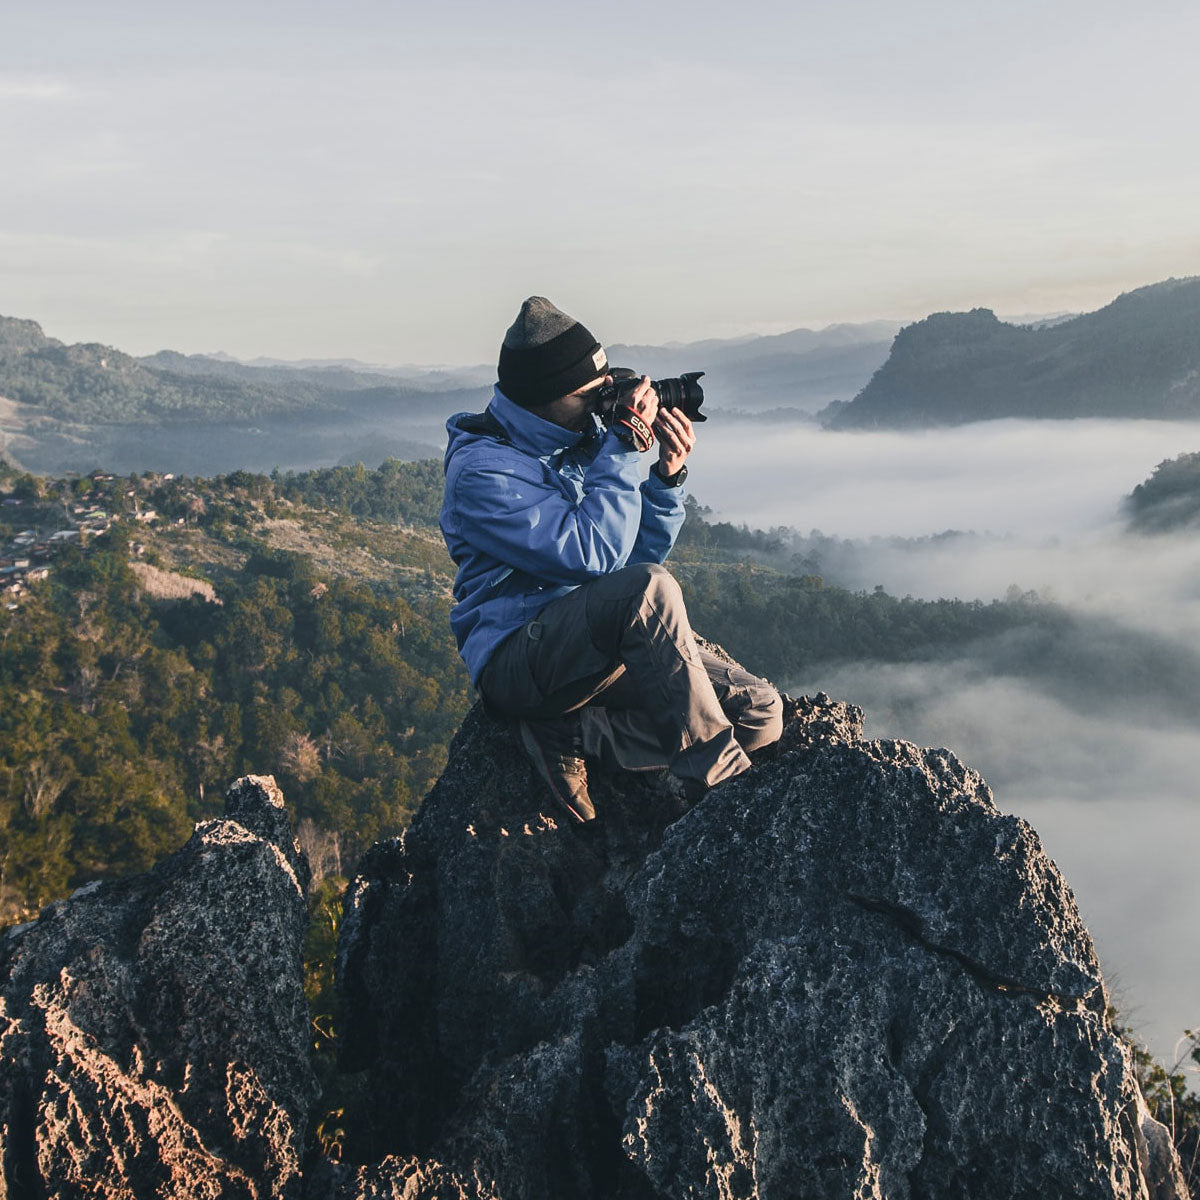 Travel photography tips in one shot for unforgettable memories